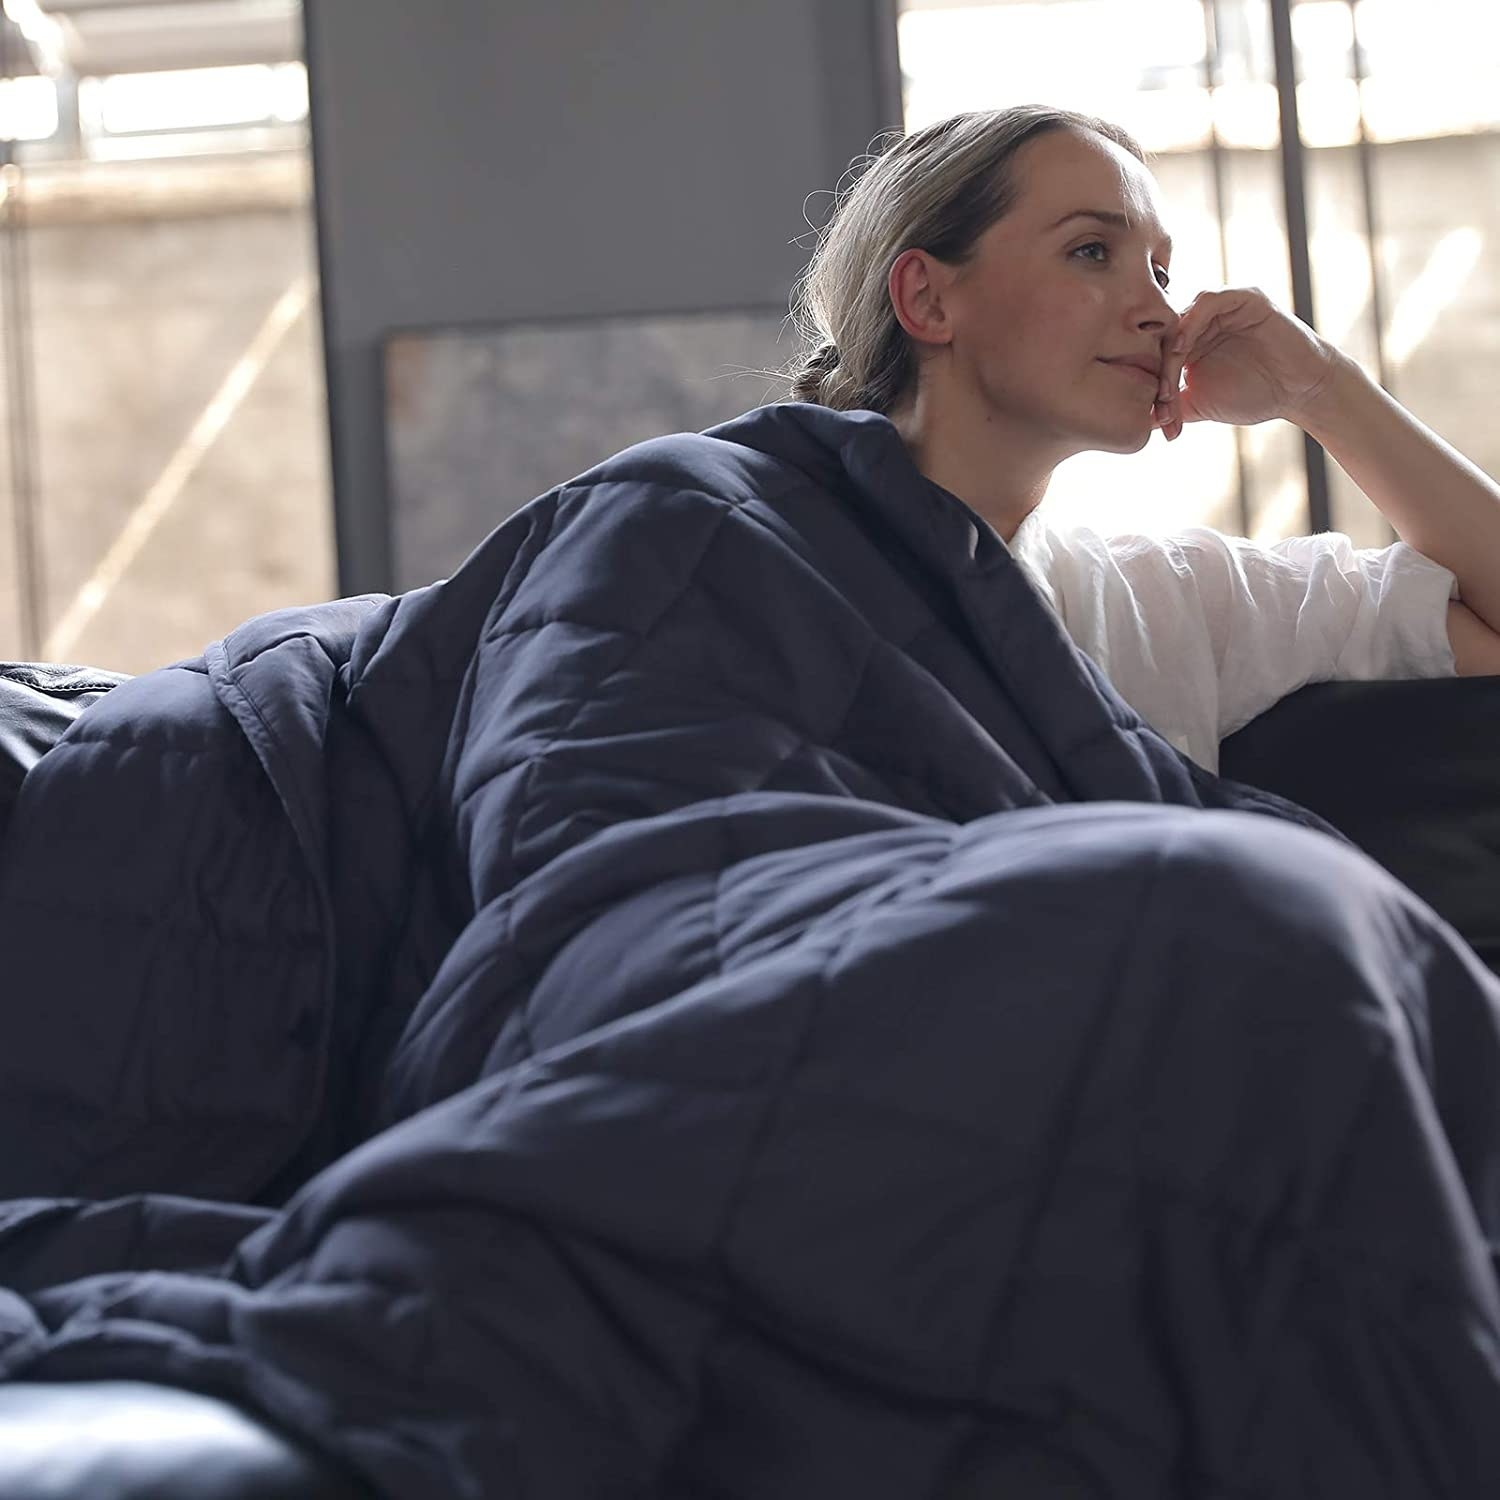 A woman sitting with a navy blue weighted blanket on her.